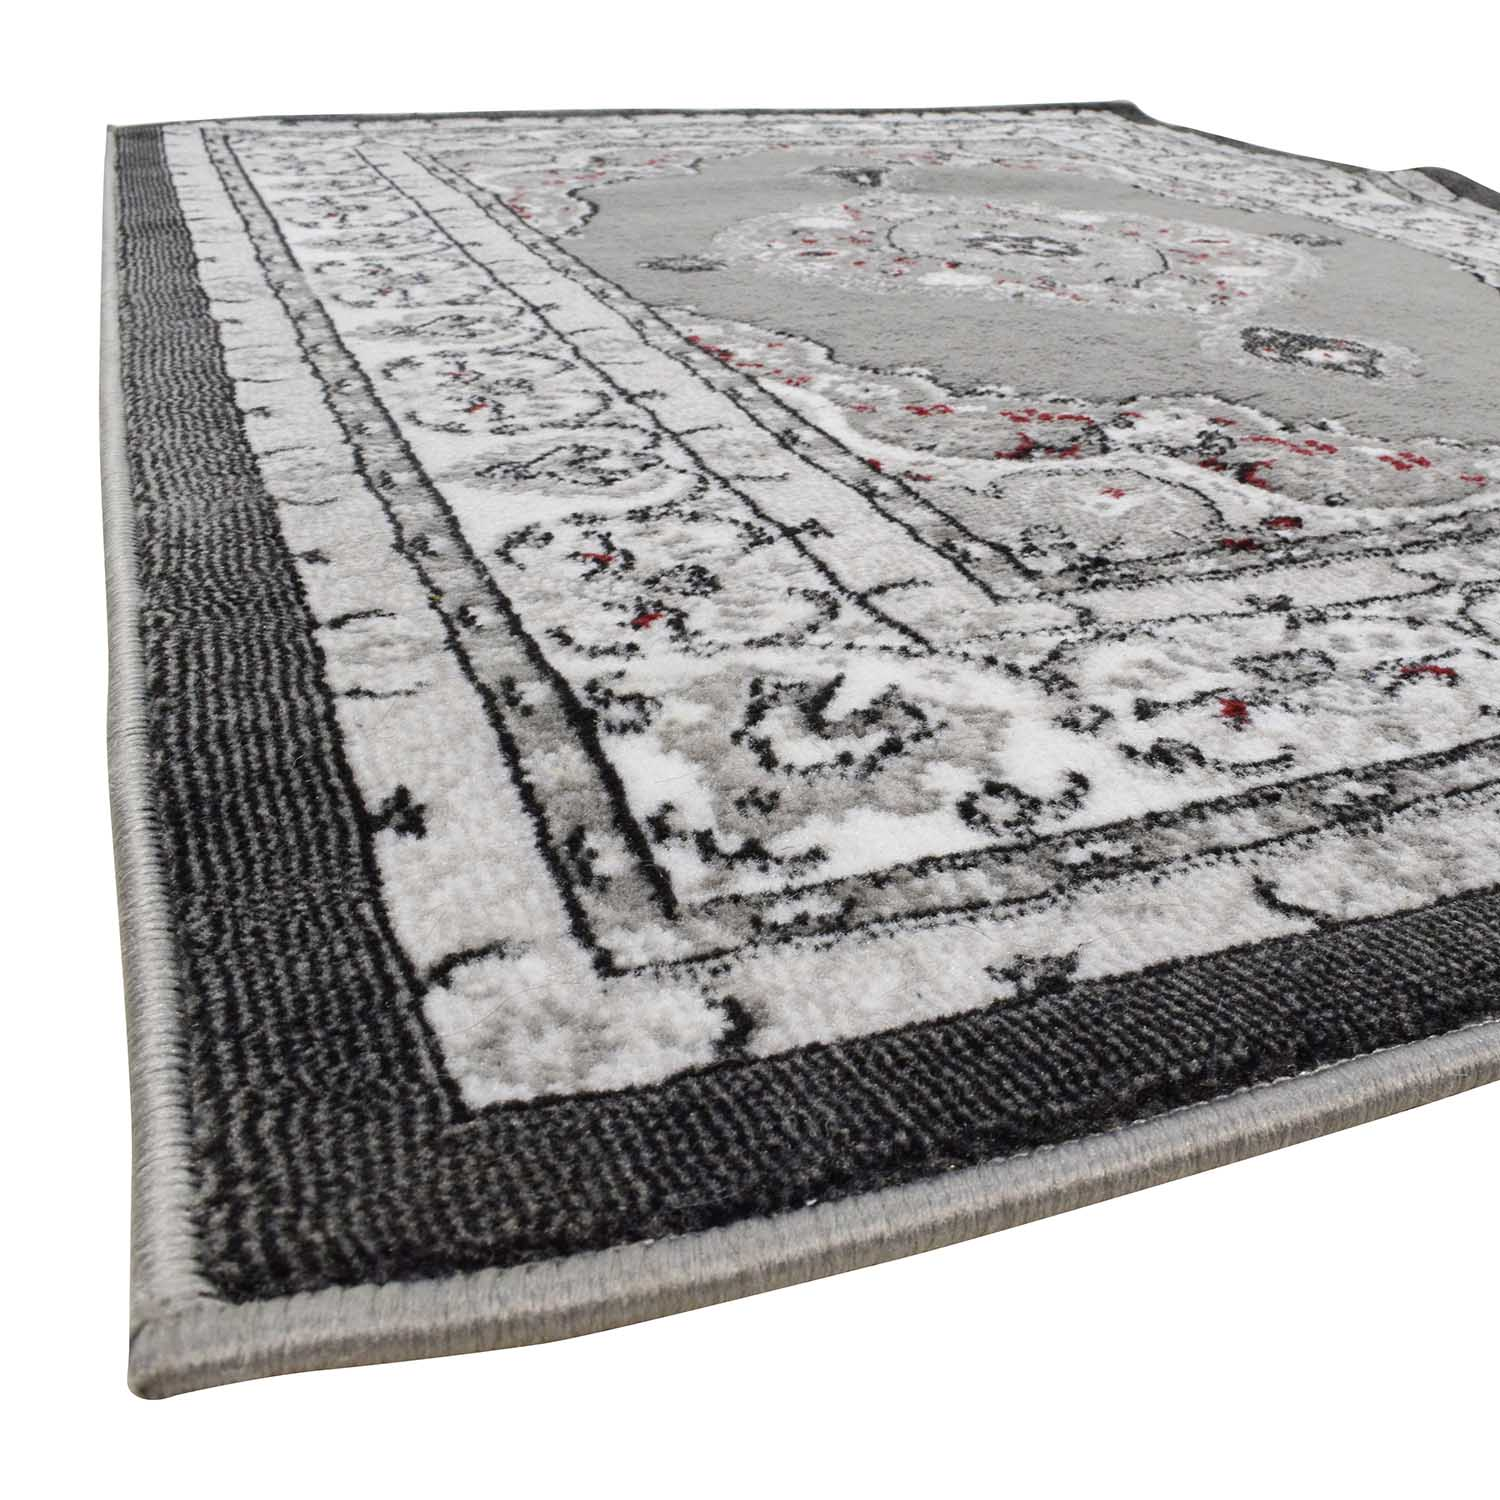 Dulcet Collection Dulcet Collection Grey and Black Print Rug used